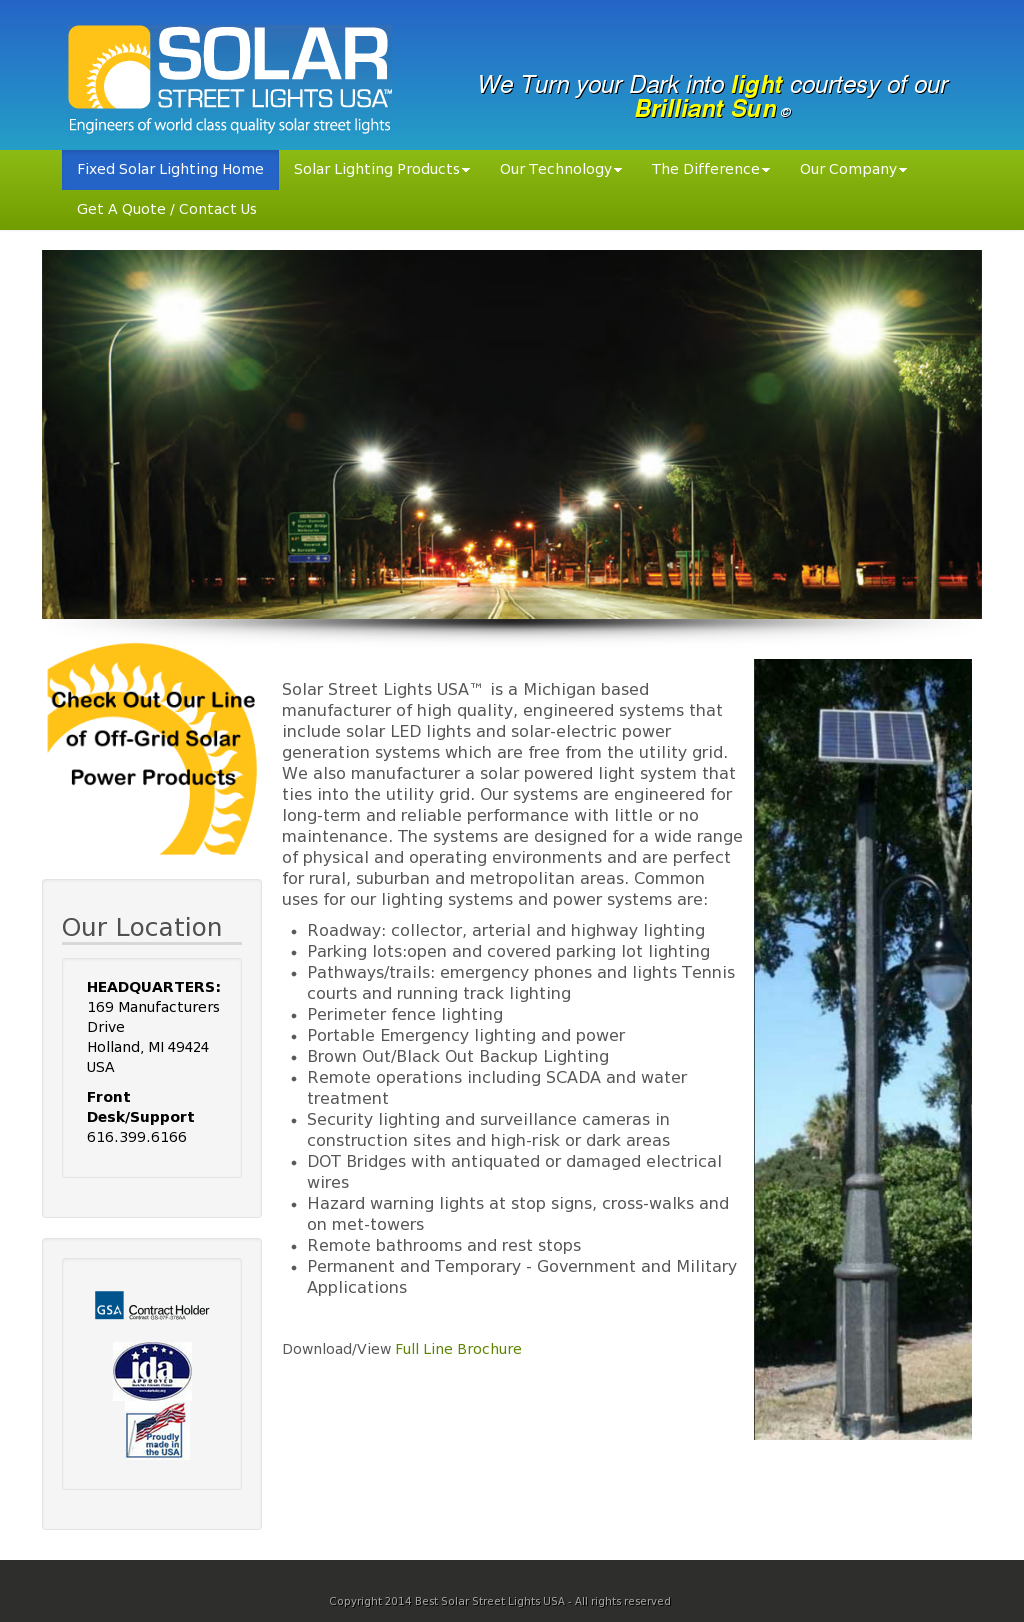 Solar Street Lights Usa Compeors Revenue And Employees Owler Company Profile